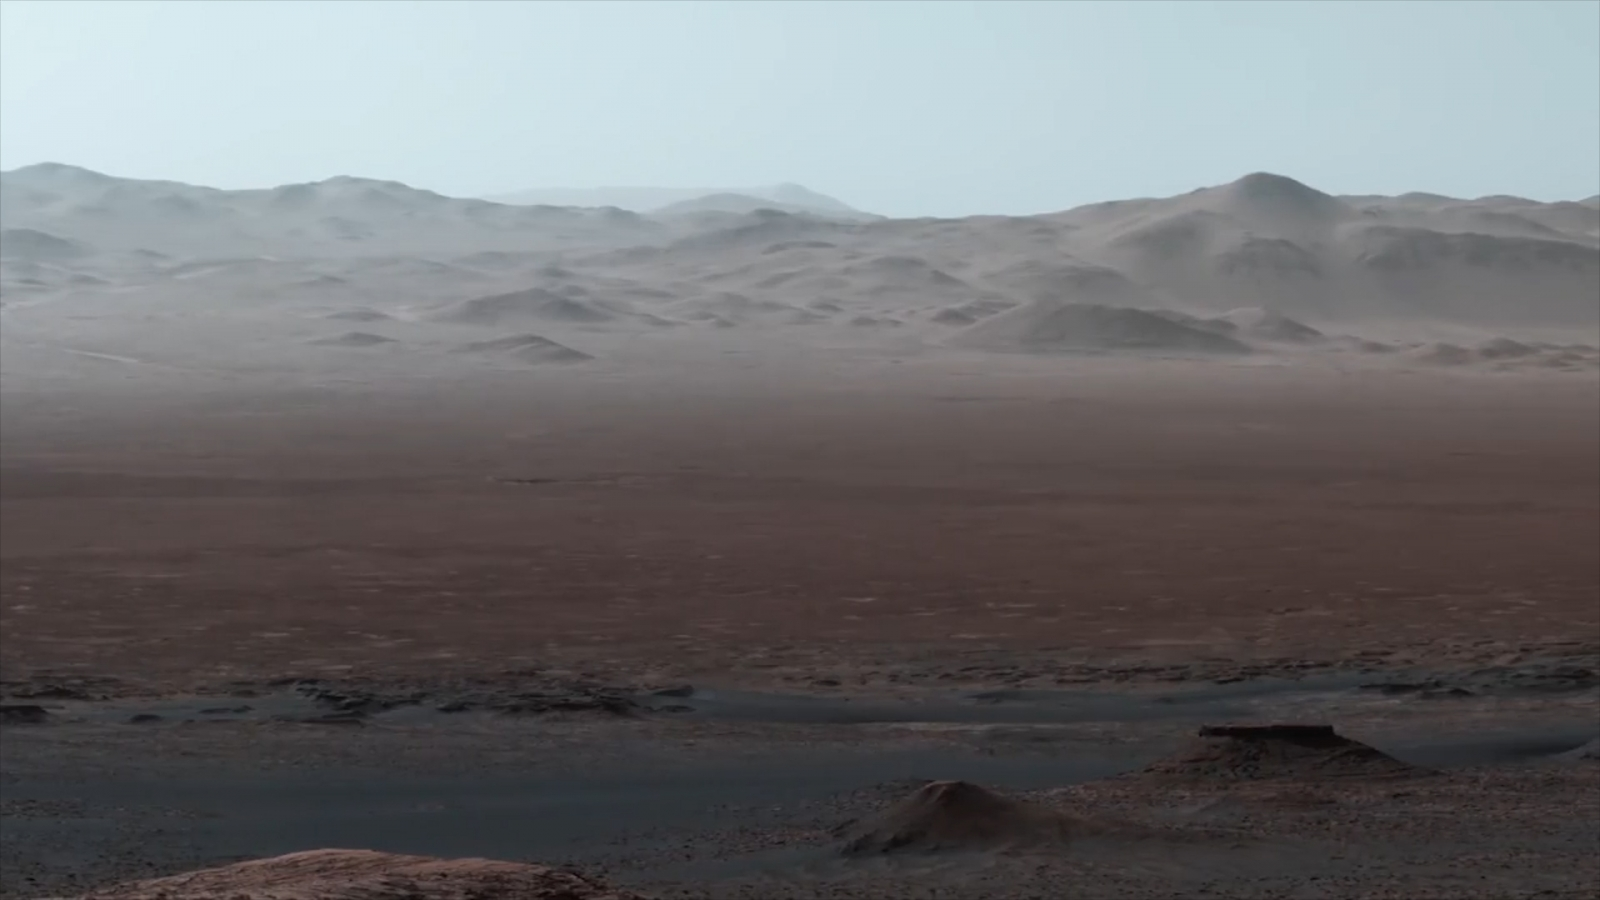 mars-rovers-view-of-the-gale-crater